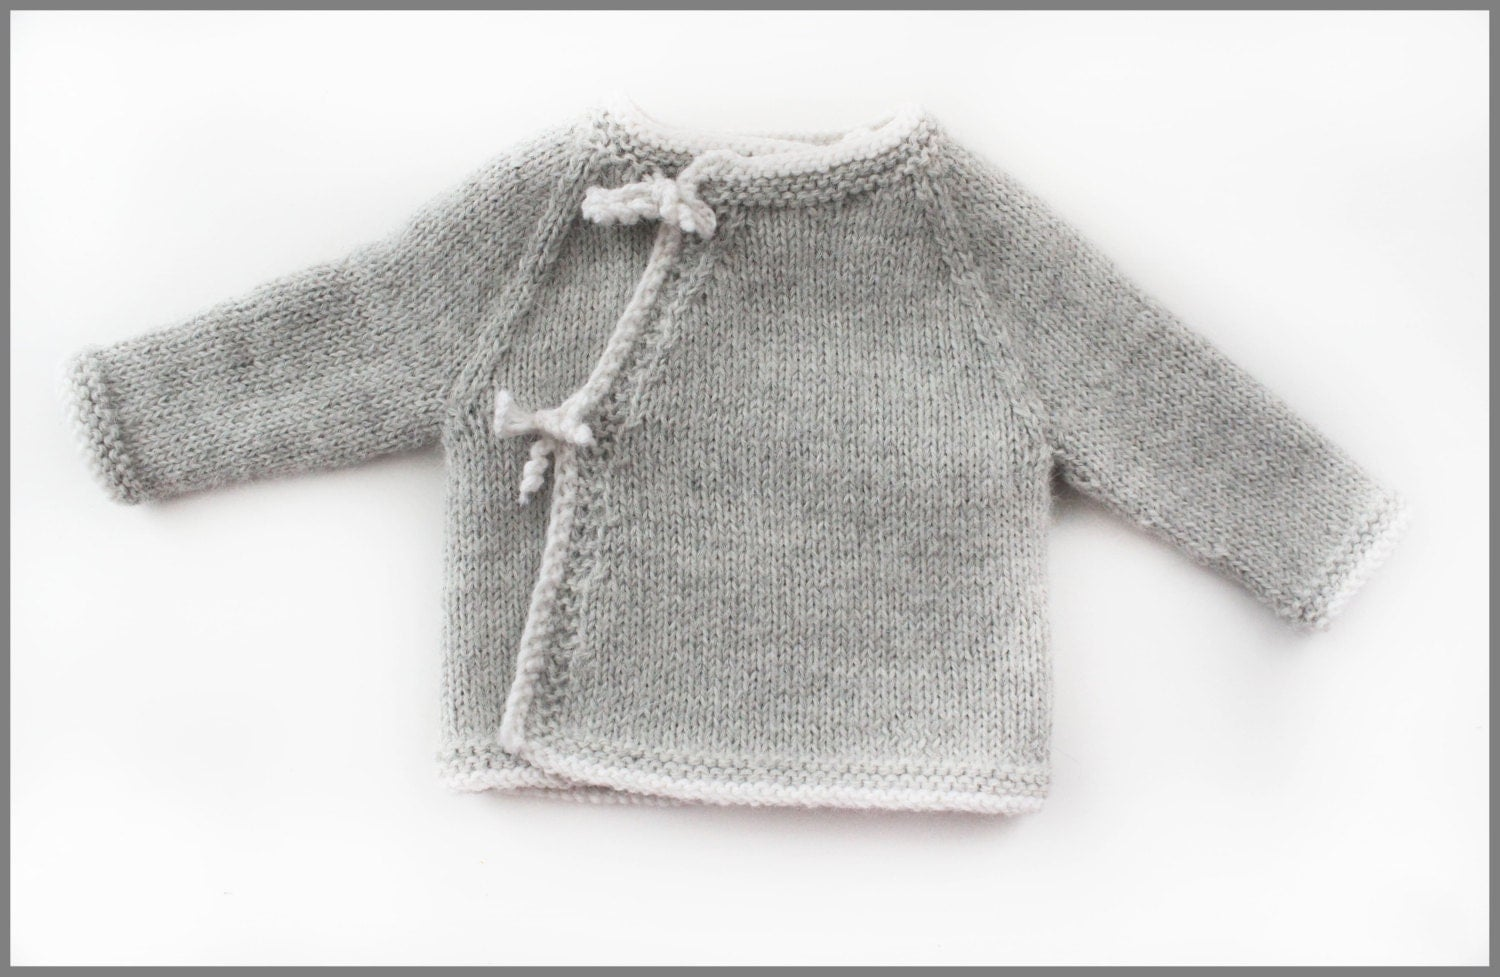 Baby Clothes. Looking for baby clothes? We can help you with quality baby clothes made from merino wool and organic cotton. Our cotton baby clothing feels amazing and will last the test of time - from prem babies to toddlers our cotton is incredibly soft and thick enough to stand up against everyday use.